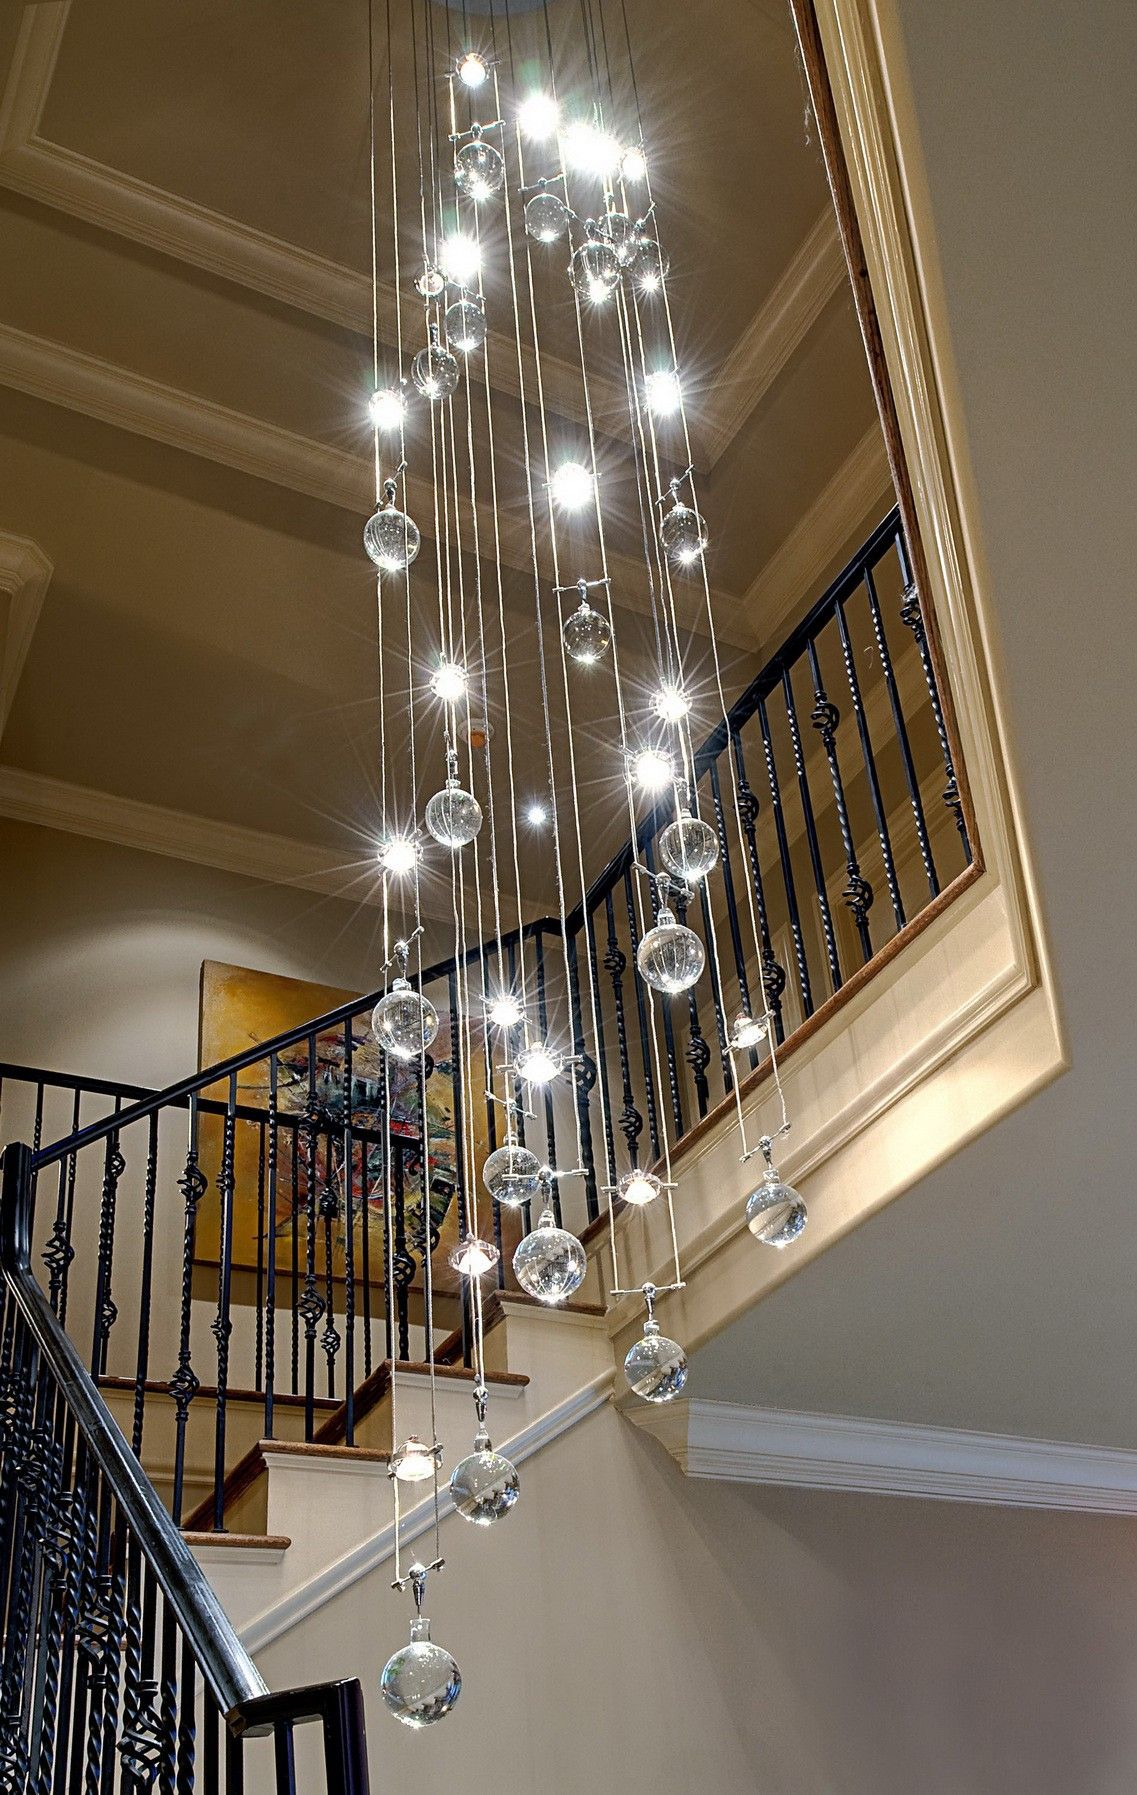 Contemporary Foyer Chandeliers : Greet your guest with dazzling foyer chandeliers cool